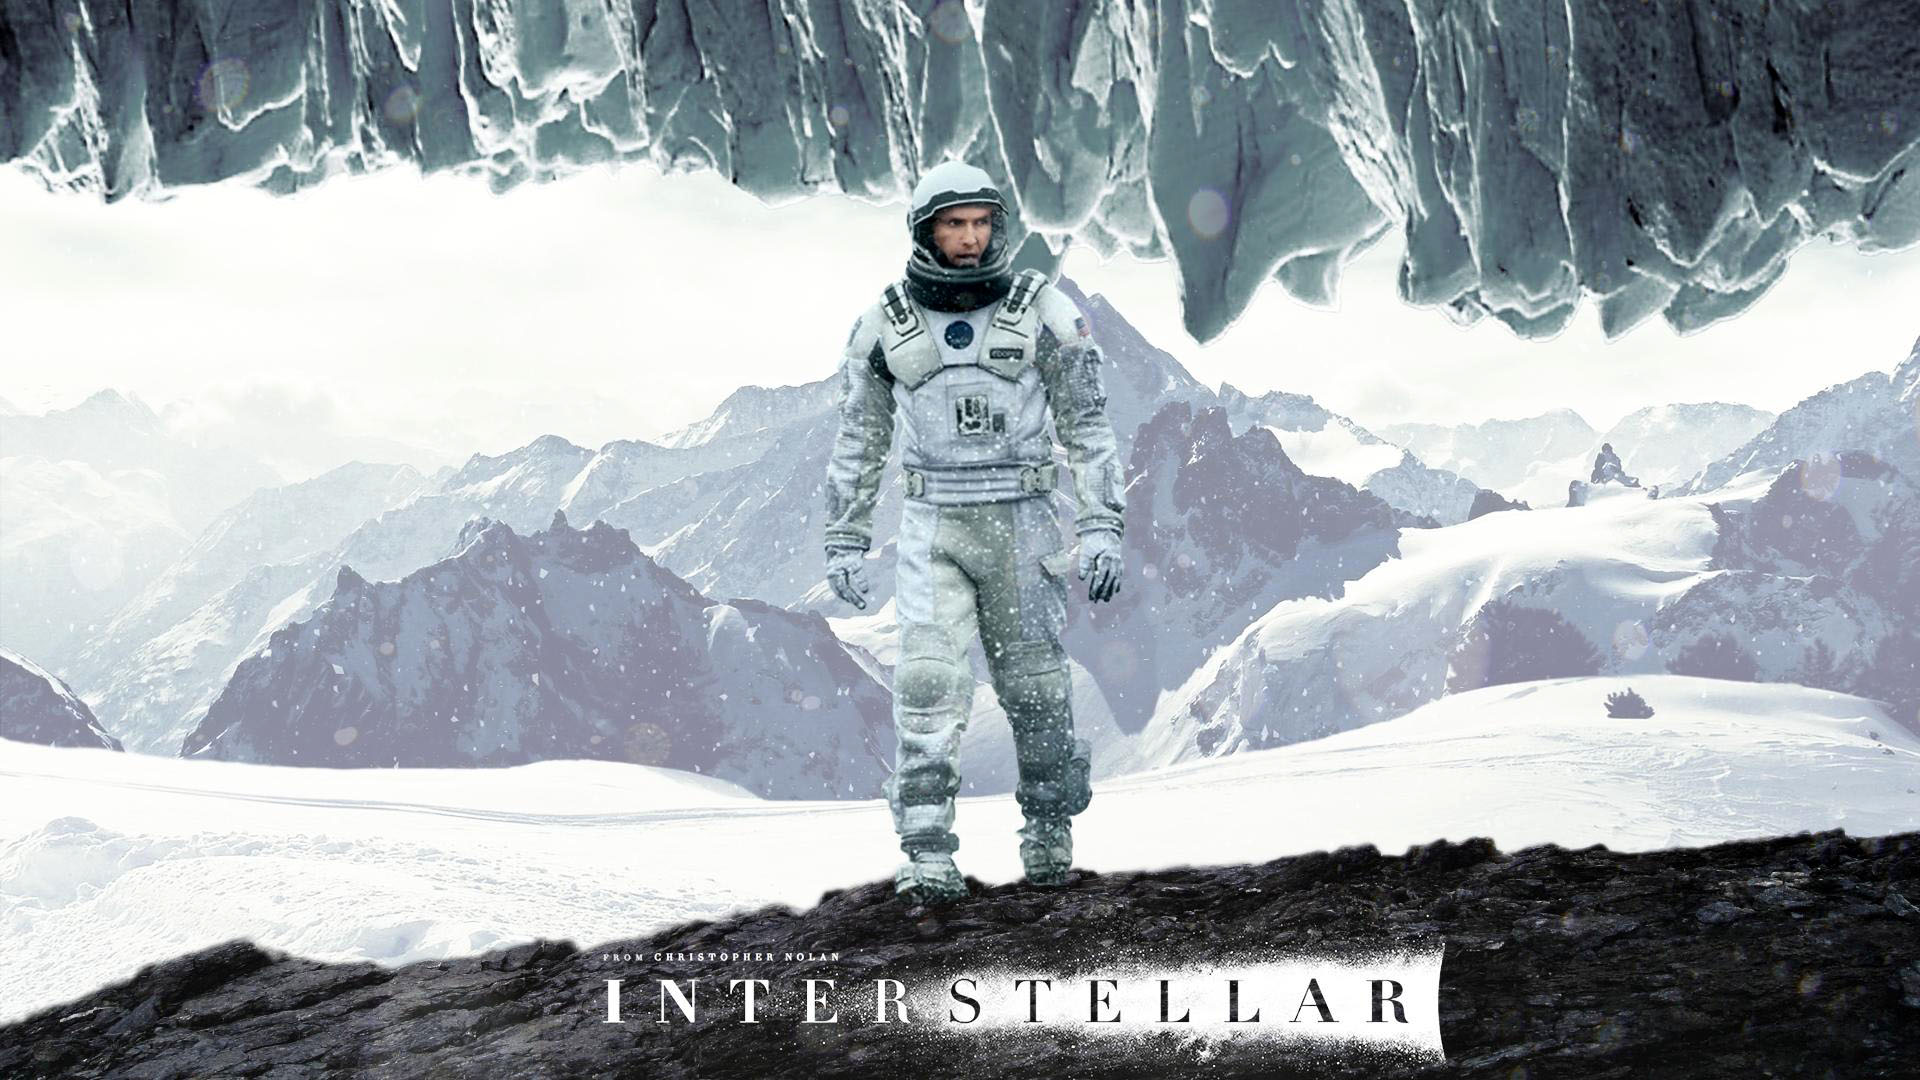 Free Download Interstellar Movie Scene 1920x1080 For Your